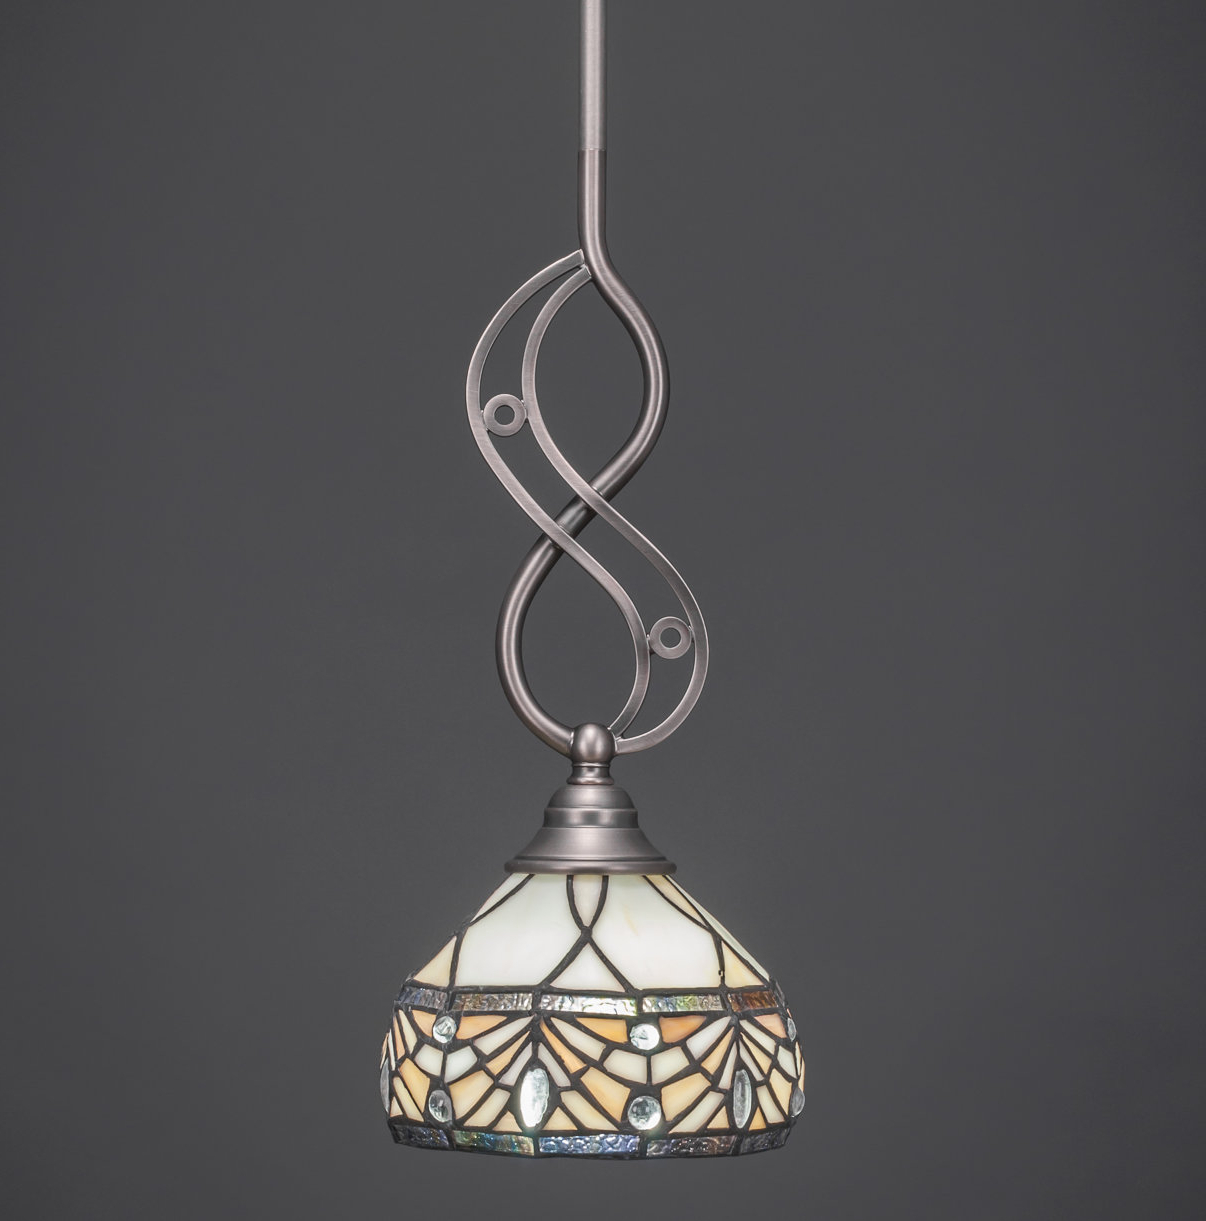 [%Fleur De Lis Living Pendant Lighting Sale – Up To 65% Off Within Most Current Willems 1 Light Single Drum Pendants|Willems 1 Light Single Drum Pendants Intended For Famous Fleur De Lis Living Pendant Lighting Sale – Up To 65% Off|Most Recently Released Willems 1 Light Single Drum Pendants Inside Fleur De Lis Living Pendant Lighting Sale – Up To 65% Off|Favorite Fleur De Lis Living Pendant Lighting Sale – Up To 65% Off Regarding Willems 1 Light Single Drum Pendants%] (View 12 of 20)